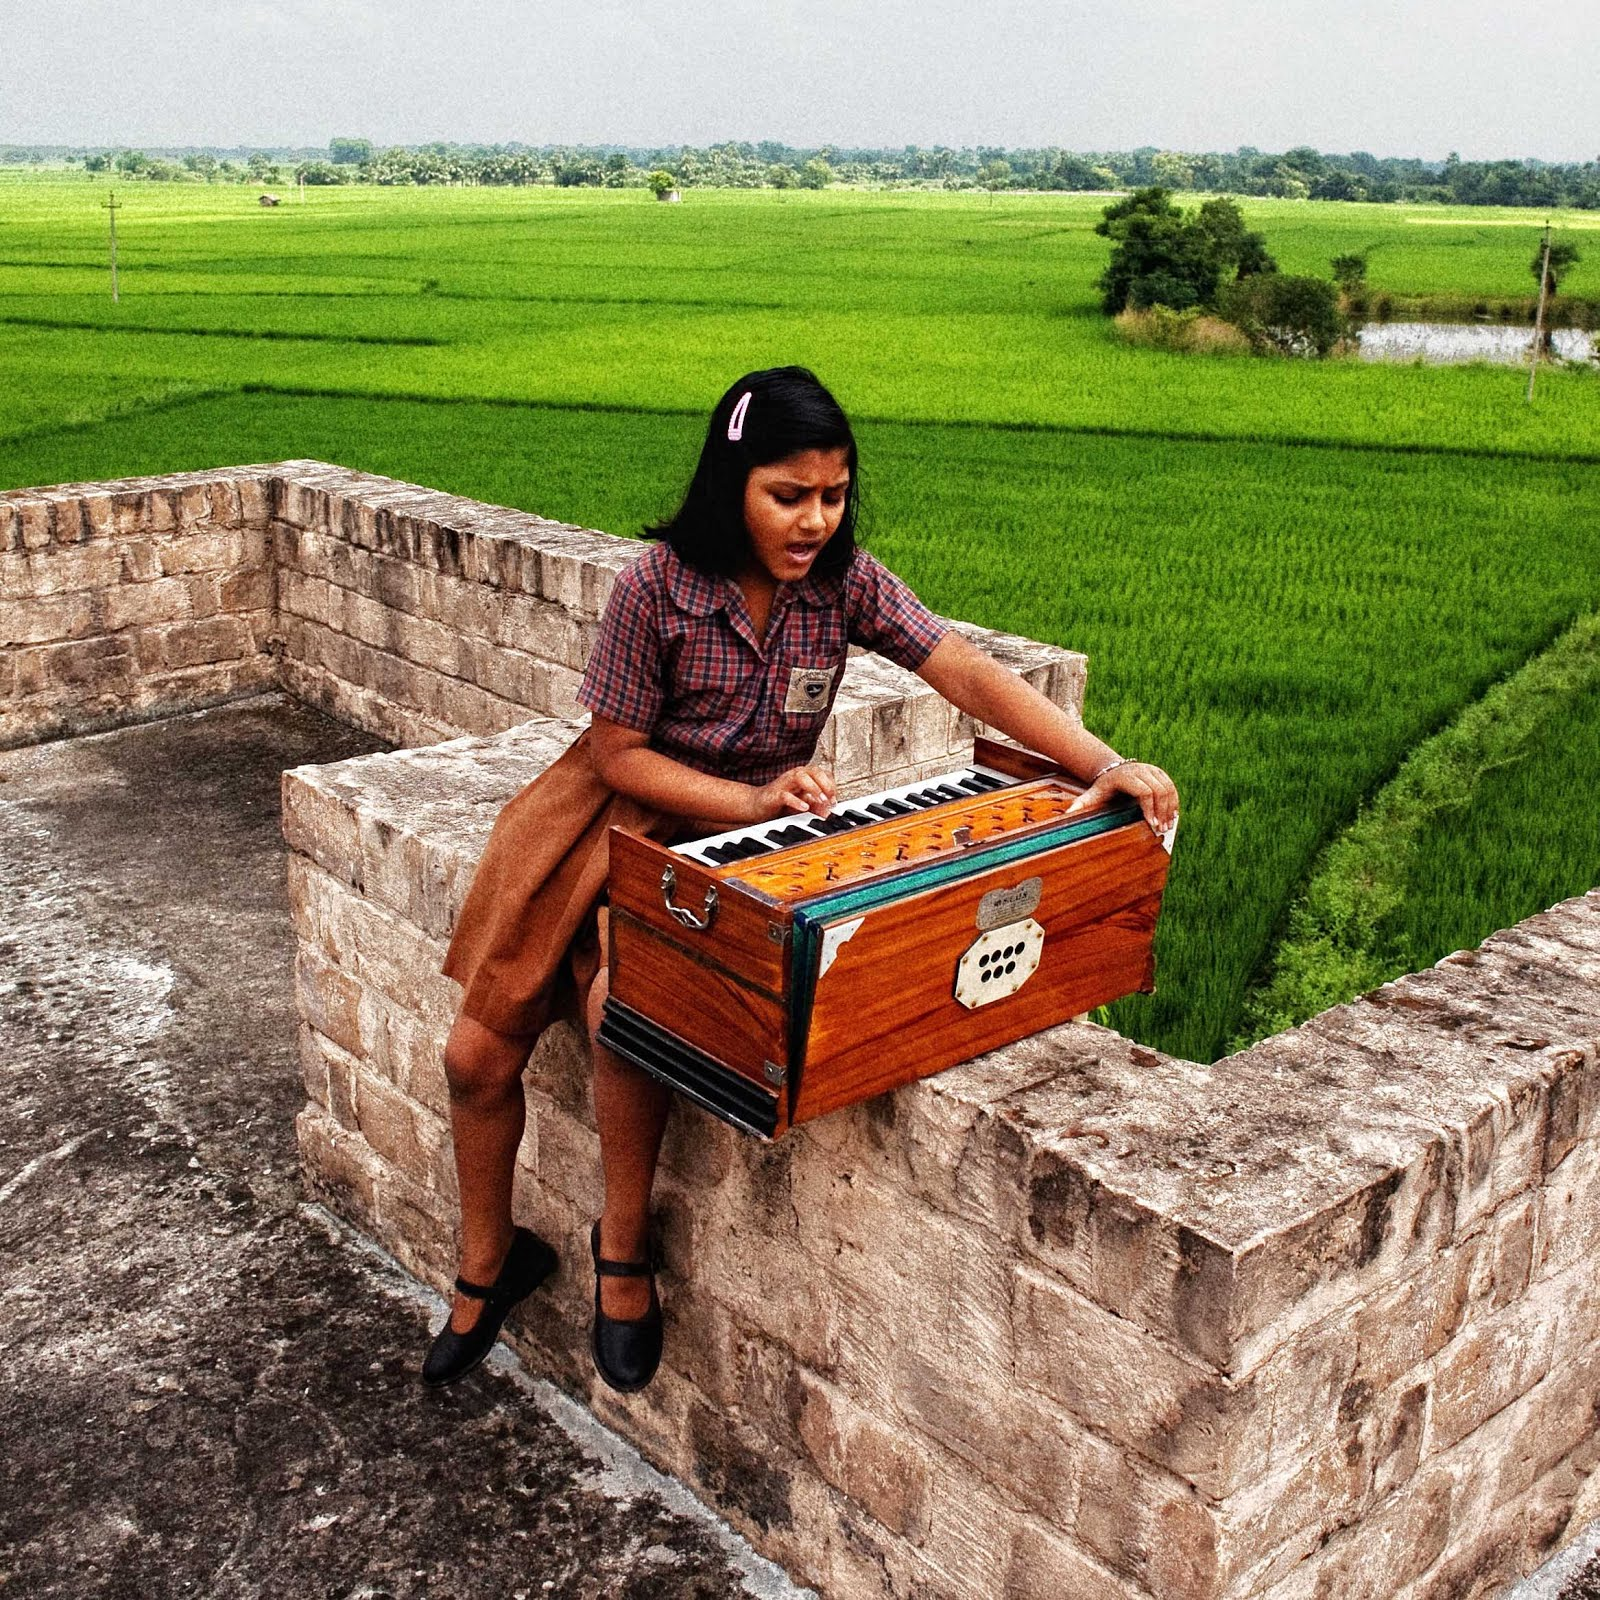 School girl with harmonium